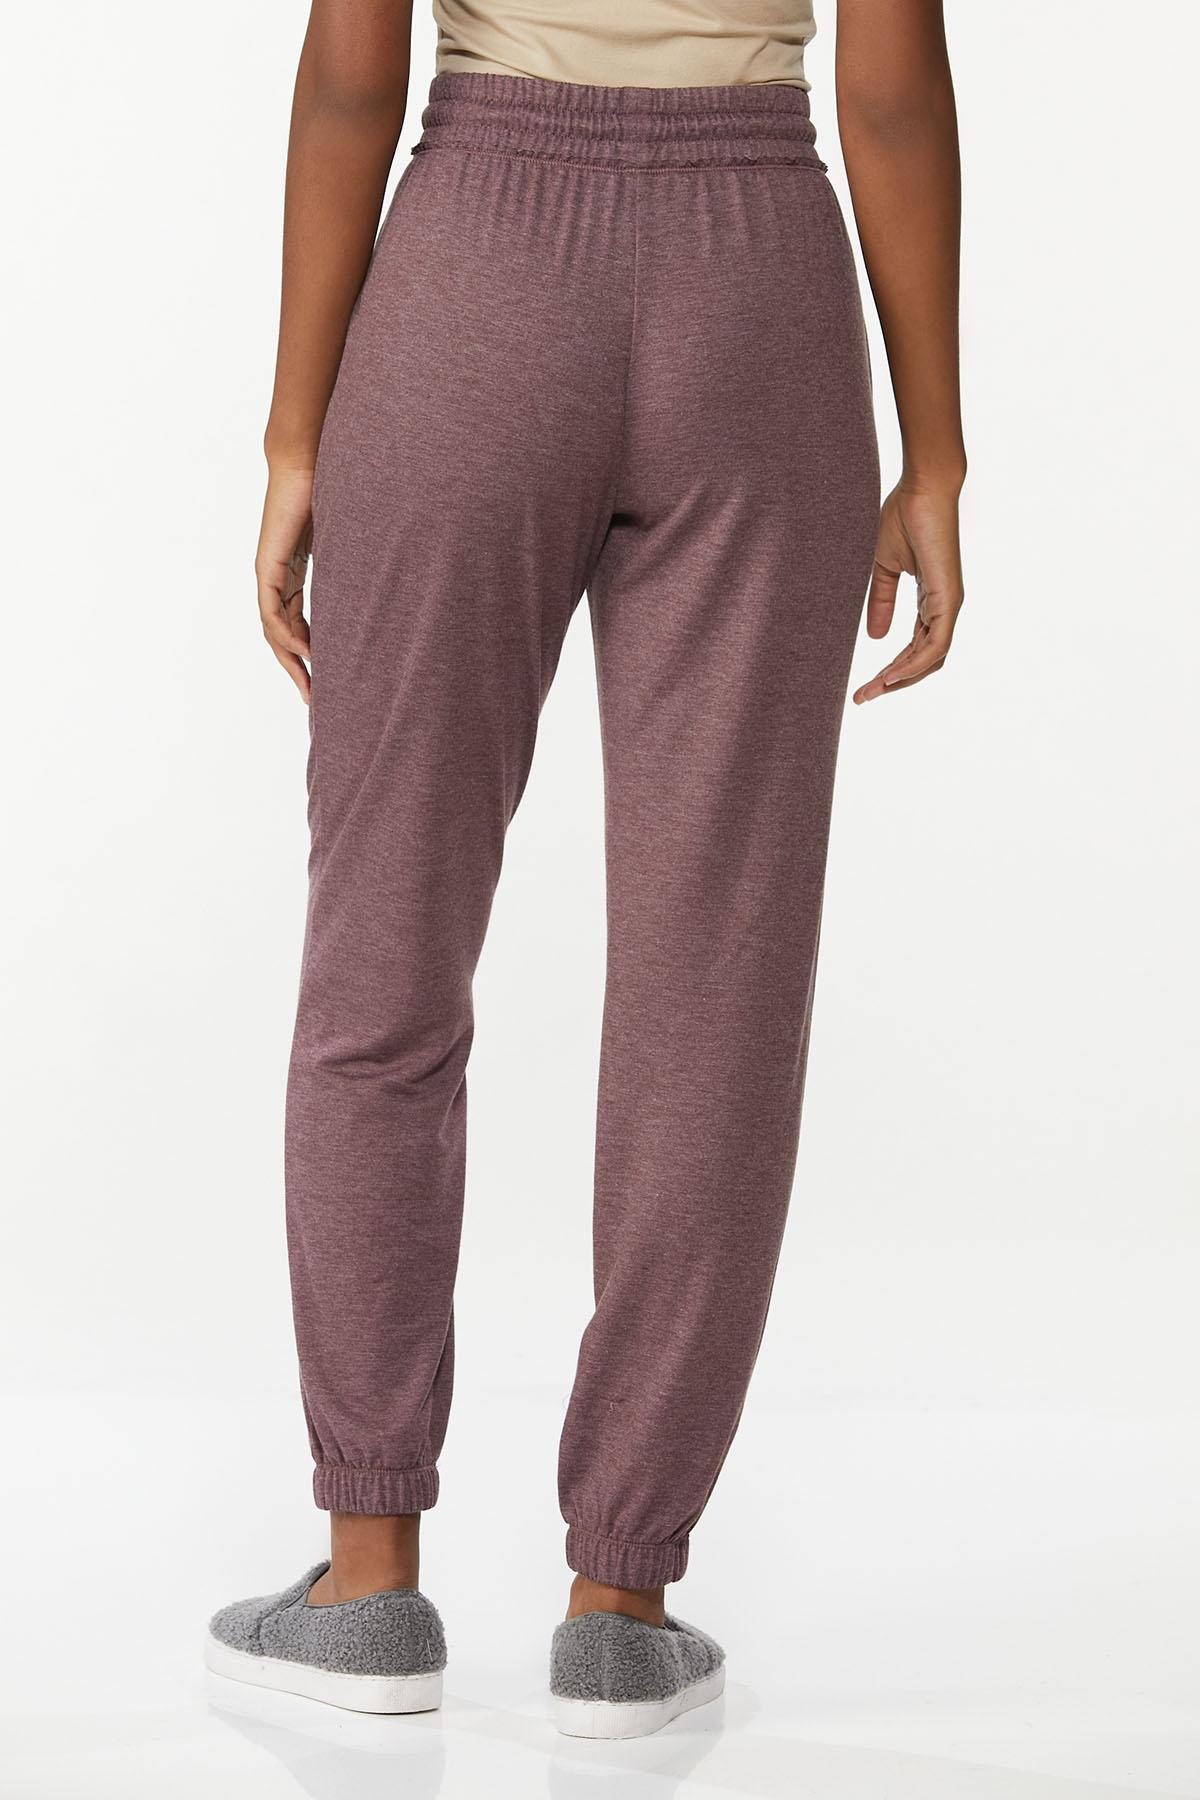 Wine French Terry Joggers (Item #44693385)